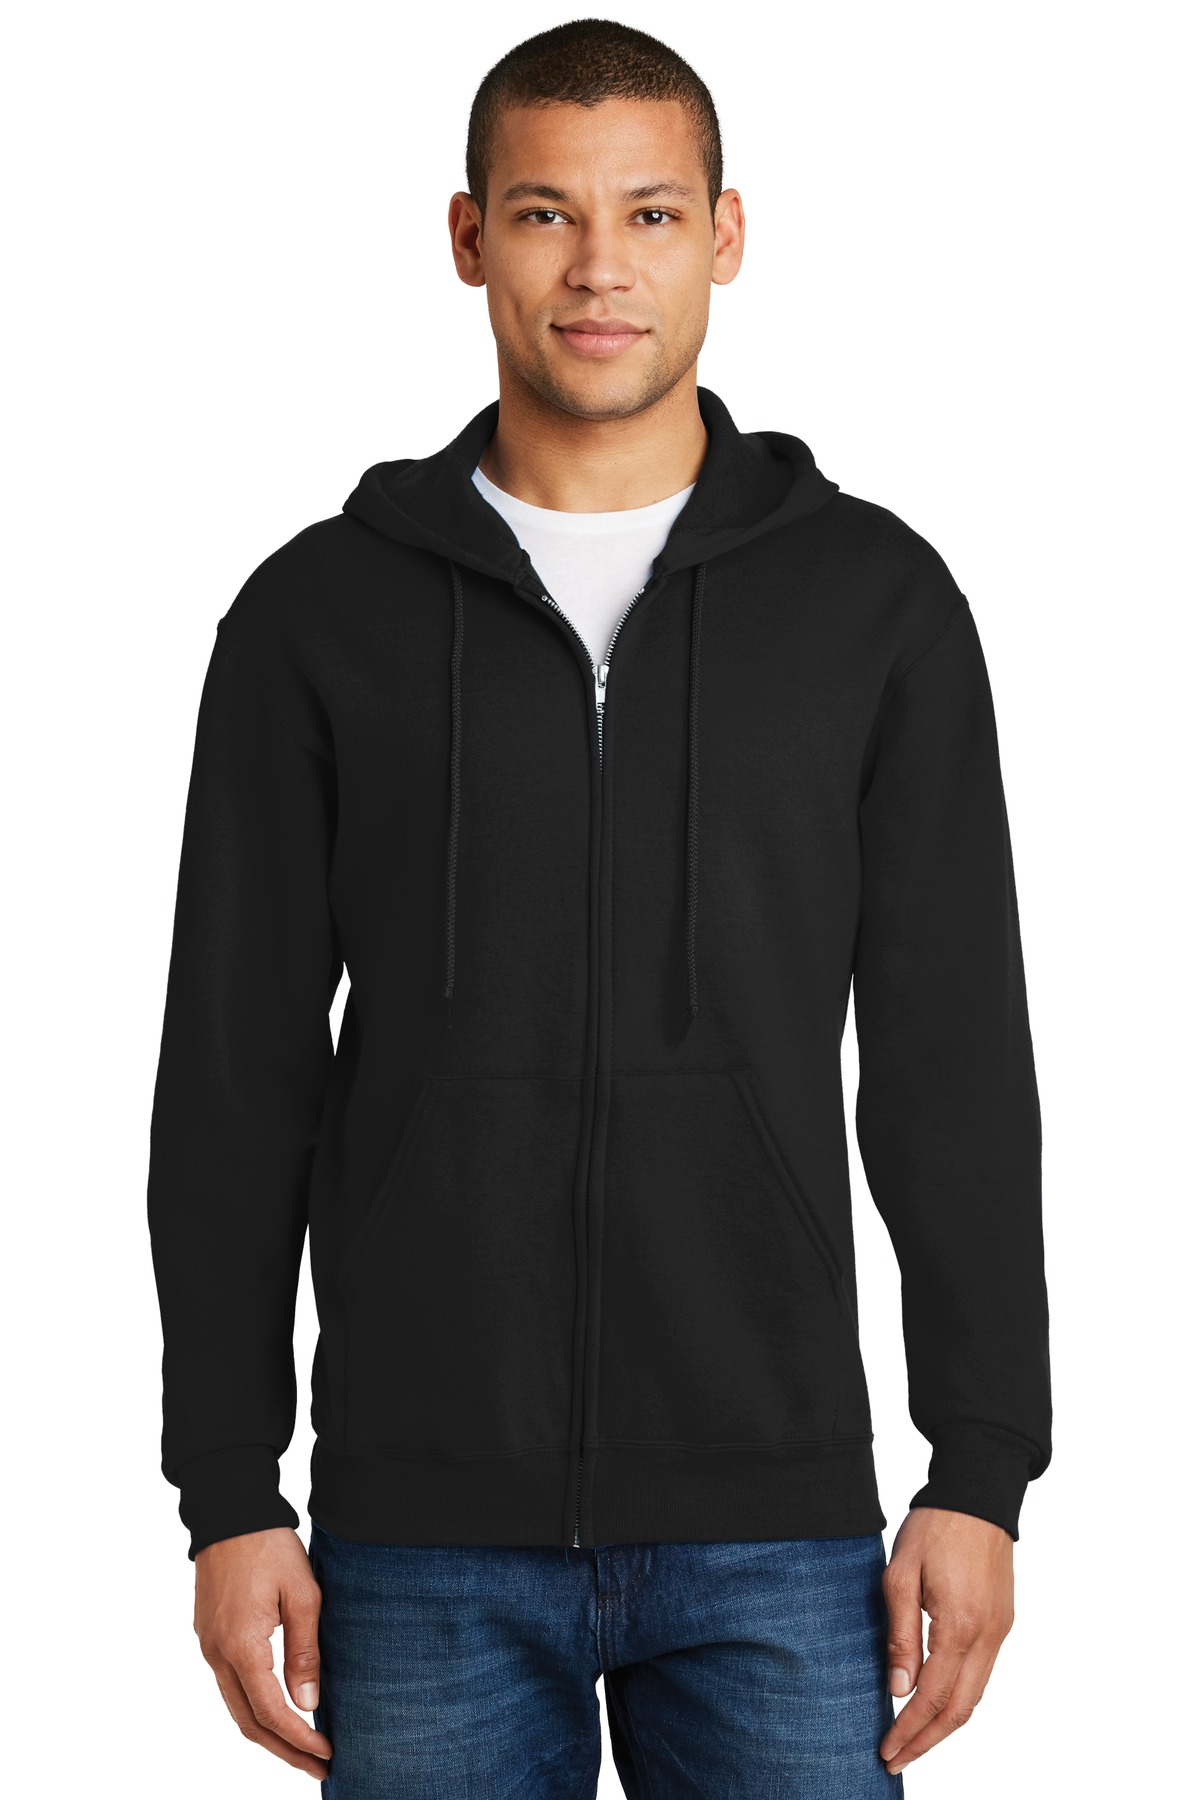 Jerzees® - NuBlend® Full-Zip Hooded Sweatshirt.-